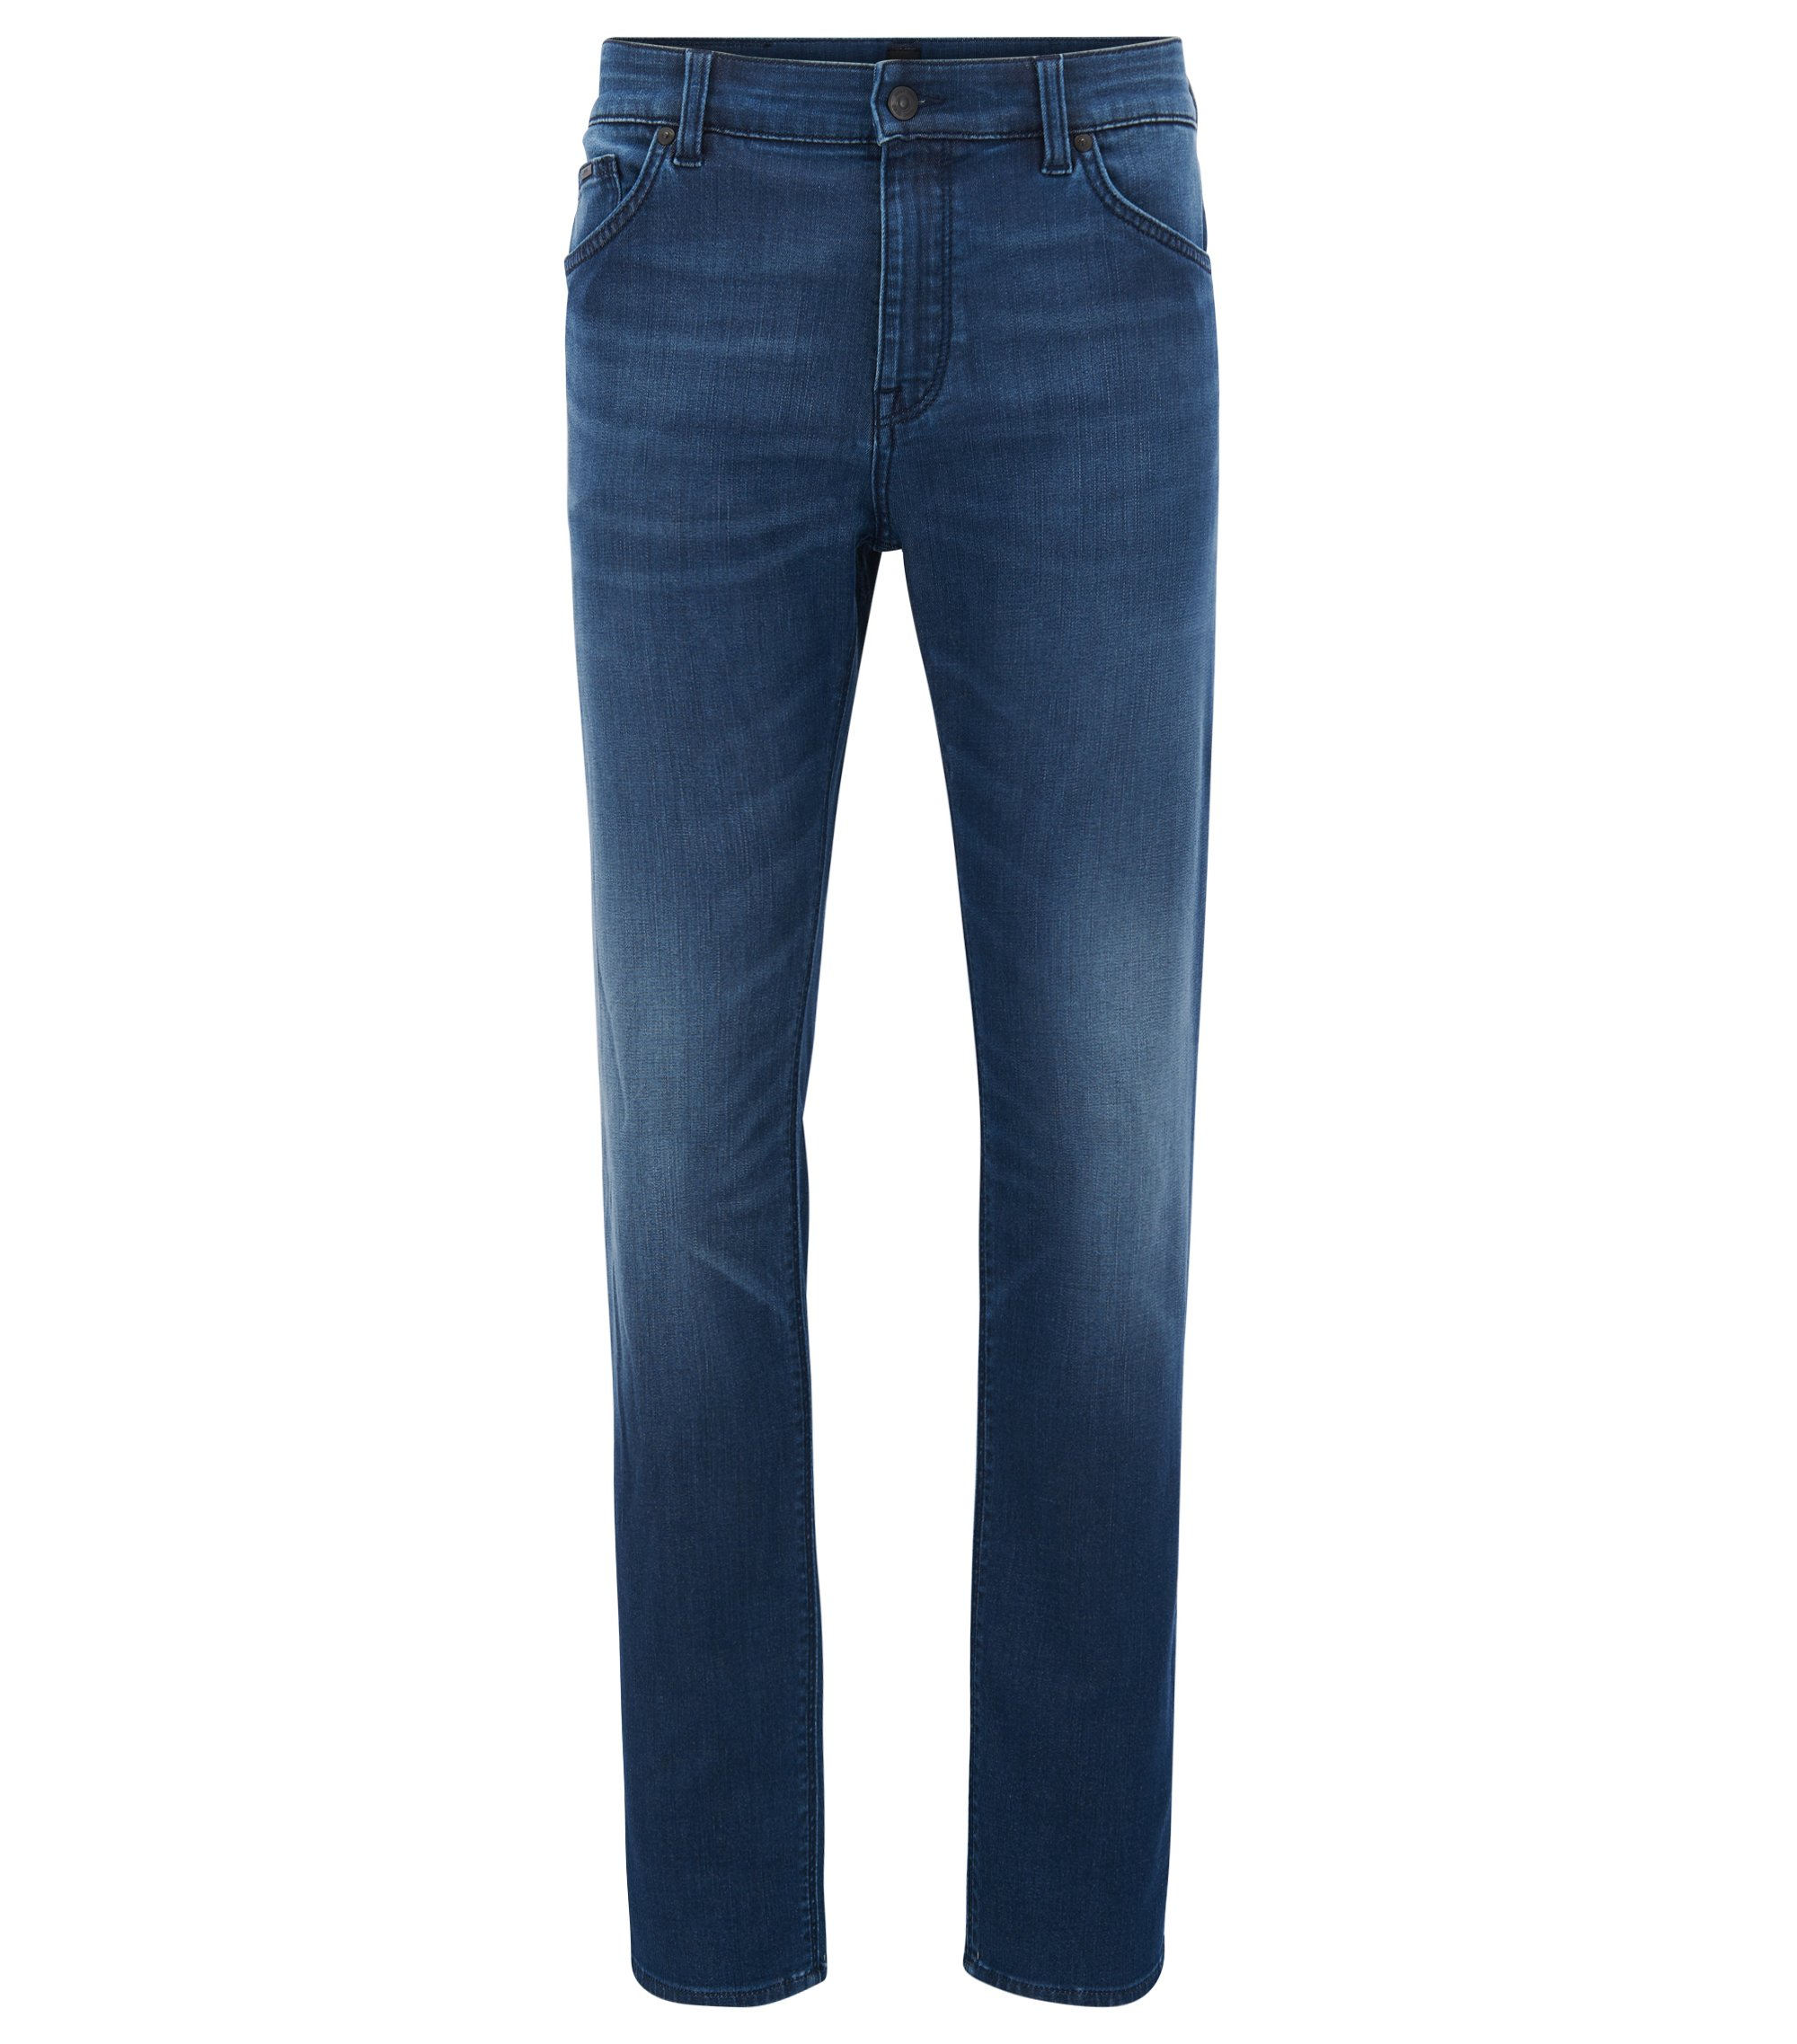 Jean Regular Fit en denim stretch bleu moyen , Bleu